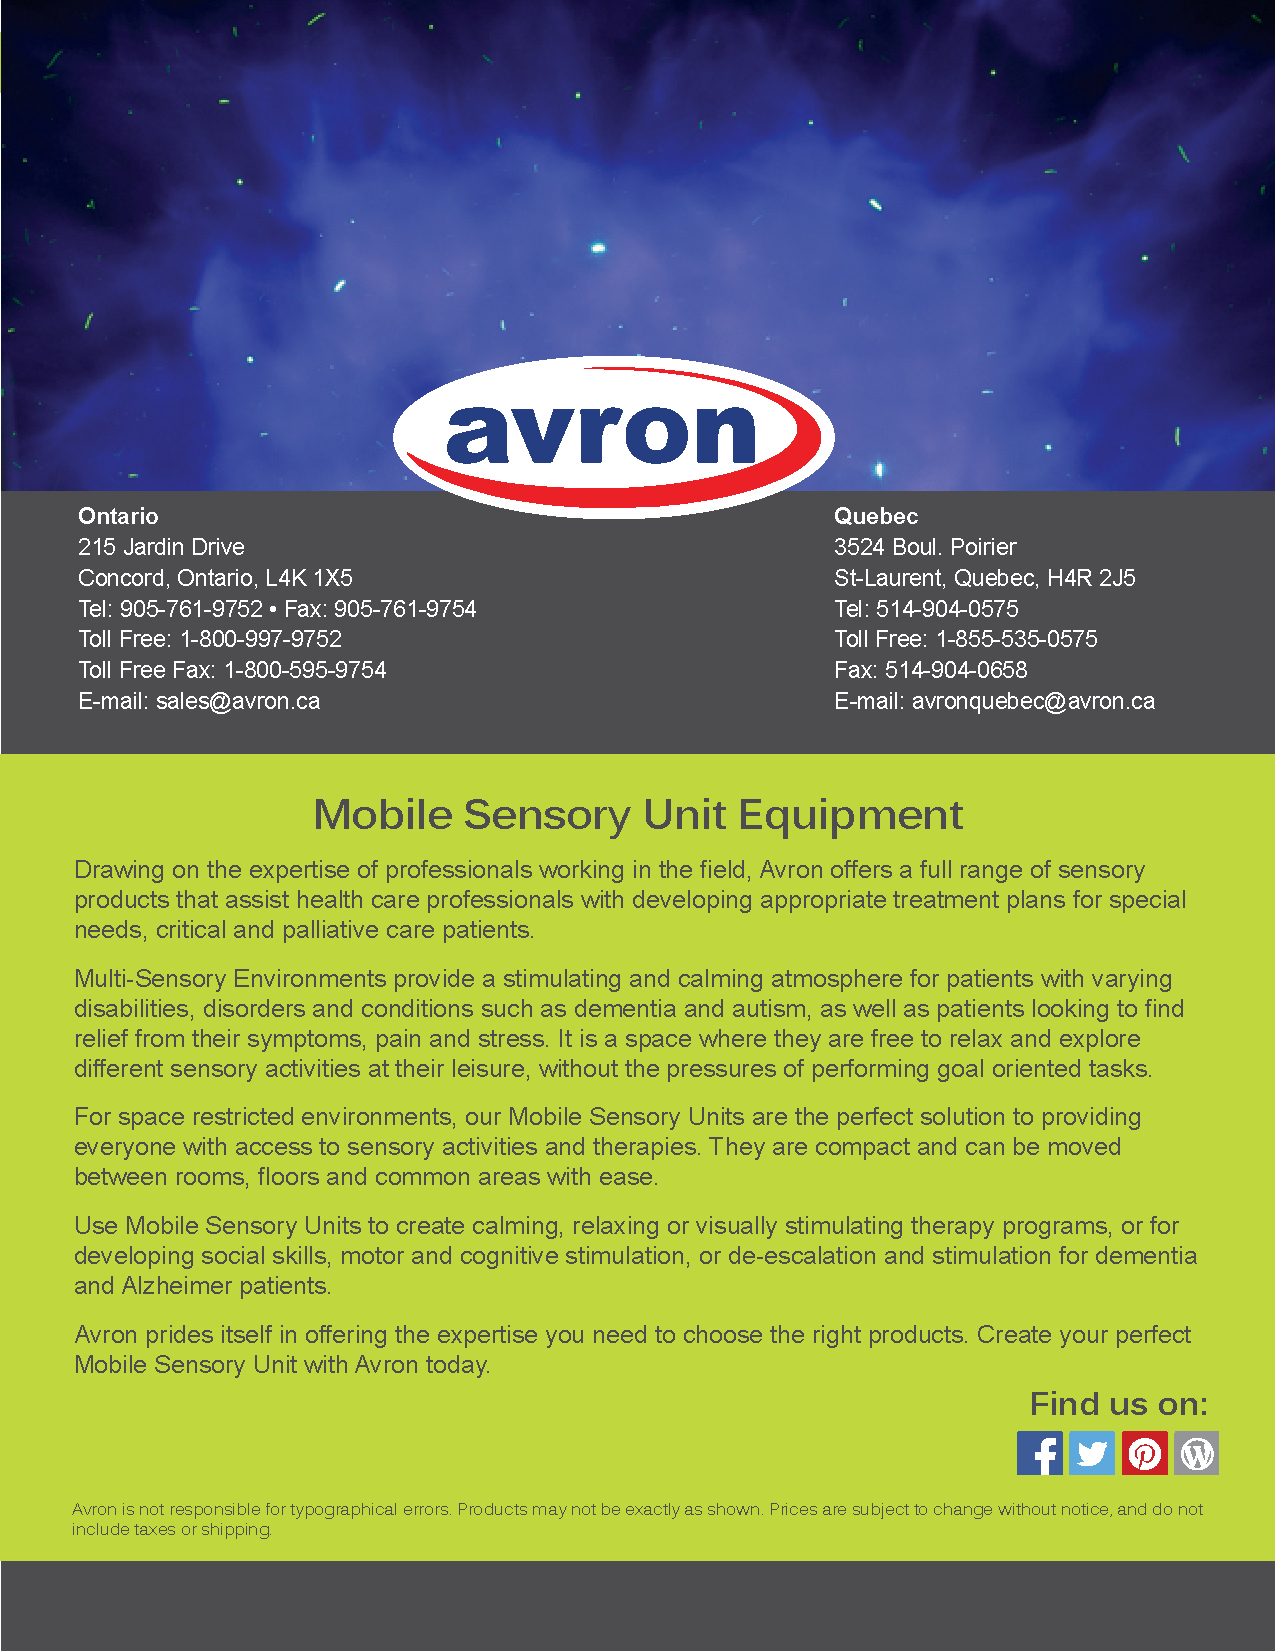 Mobile Sensory Unit Brochure_2015052140